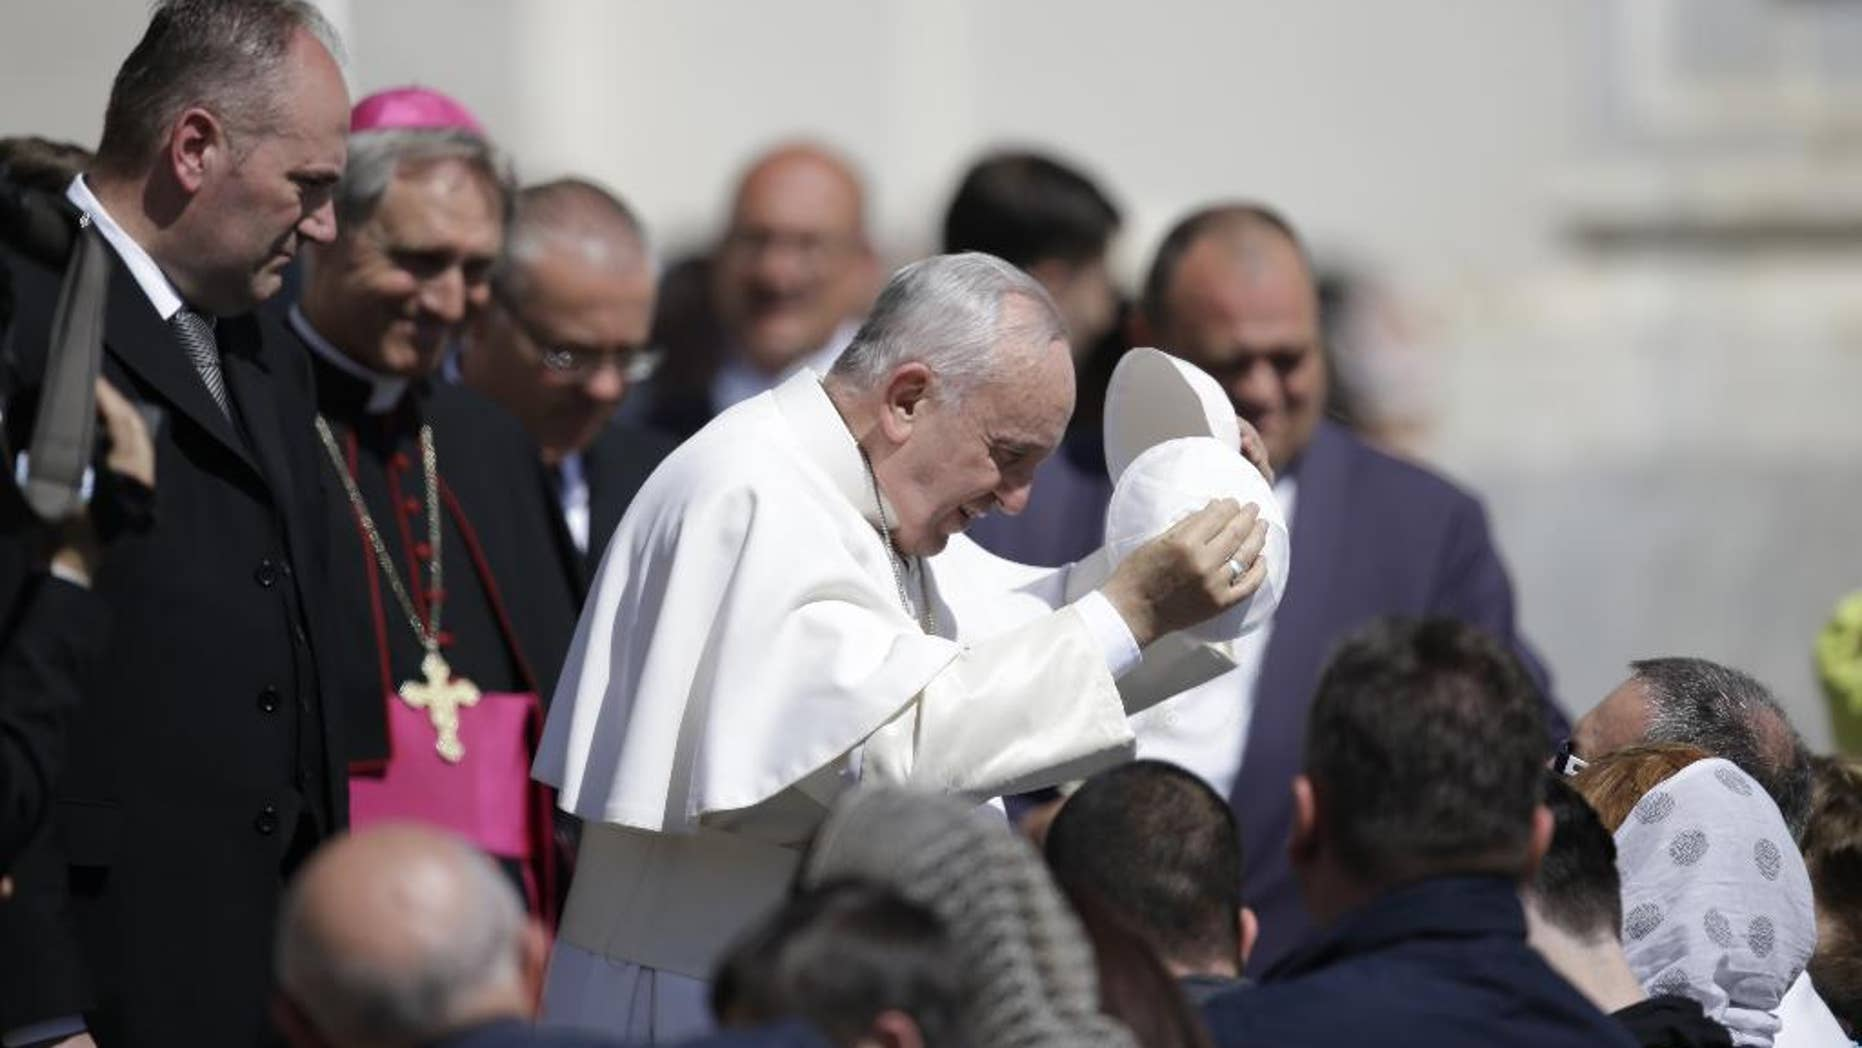 Pope Francis, center, exchanges his skull cap with one donated to him by a pilgrim as he leaves at the end of his weekly general audience, in St. Peter's Square, at the Vatican, Wednesday, April 22, 2015. (AP Photo/Gregorio Borgia)